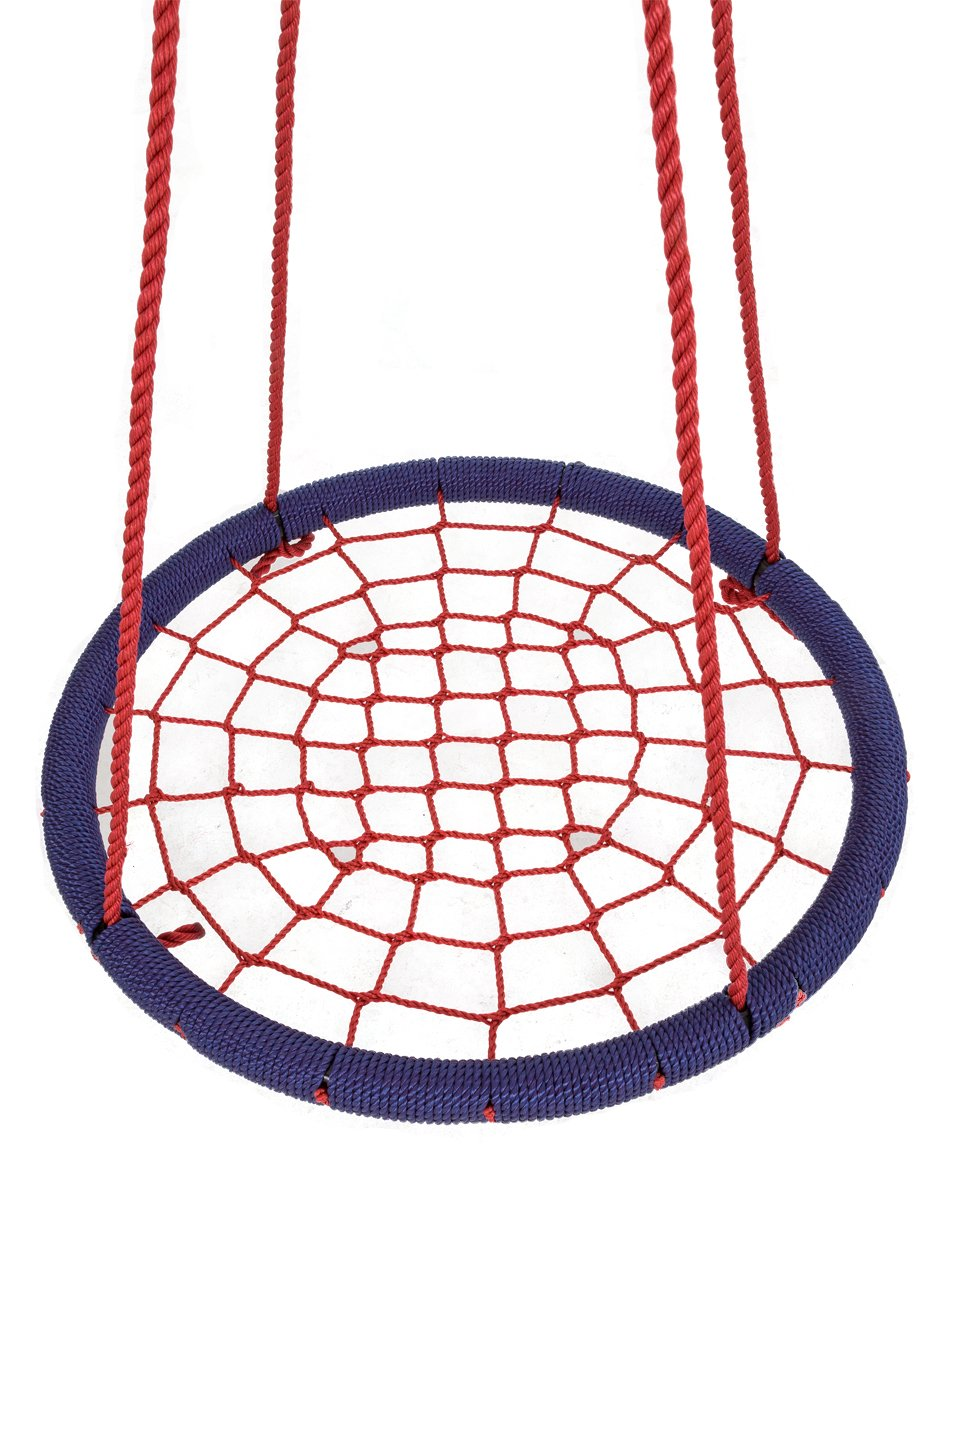 SkyBound Round Tree Swing Nets, Navy Blue/Red, 40''/Large by SkyBound (Image #2)